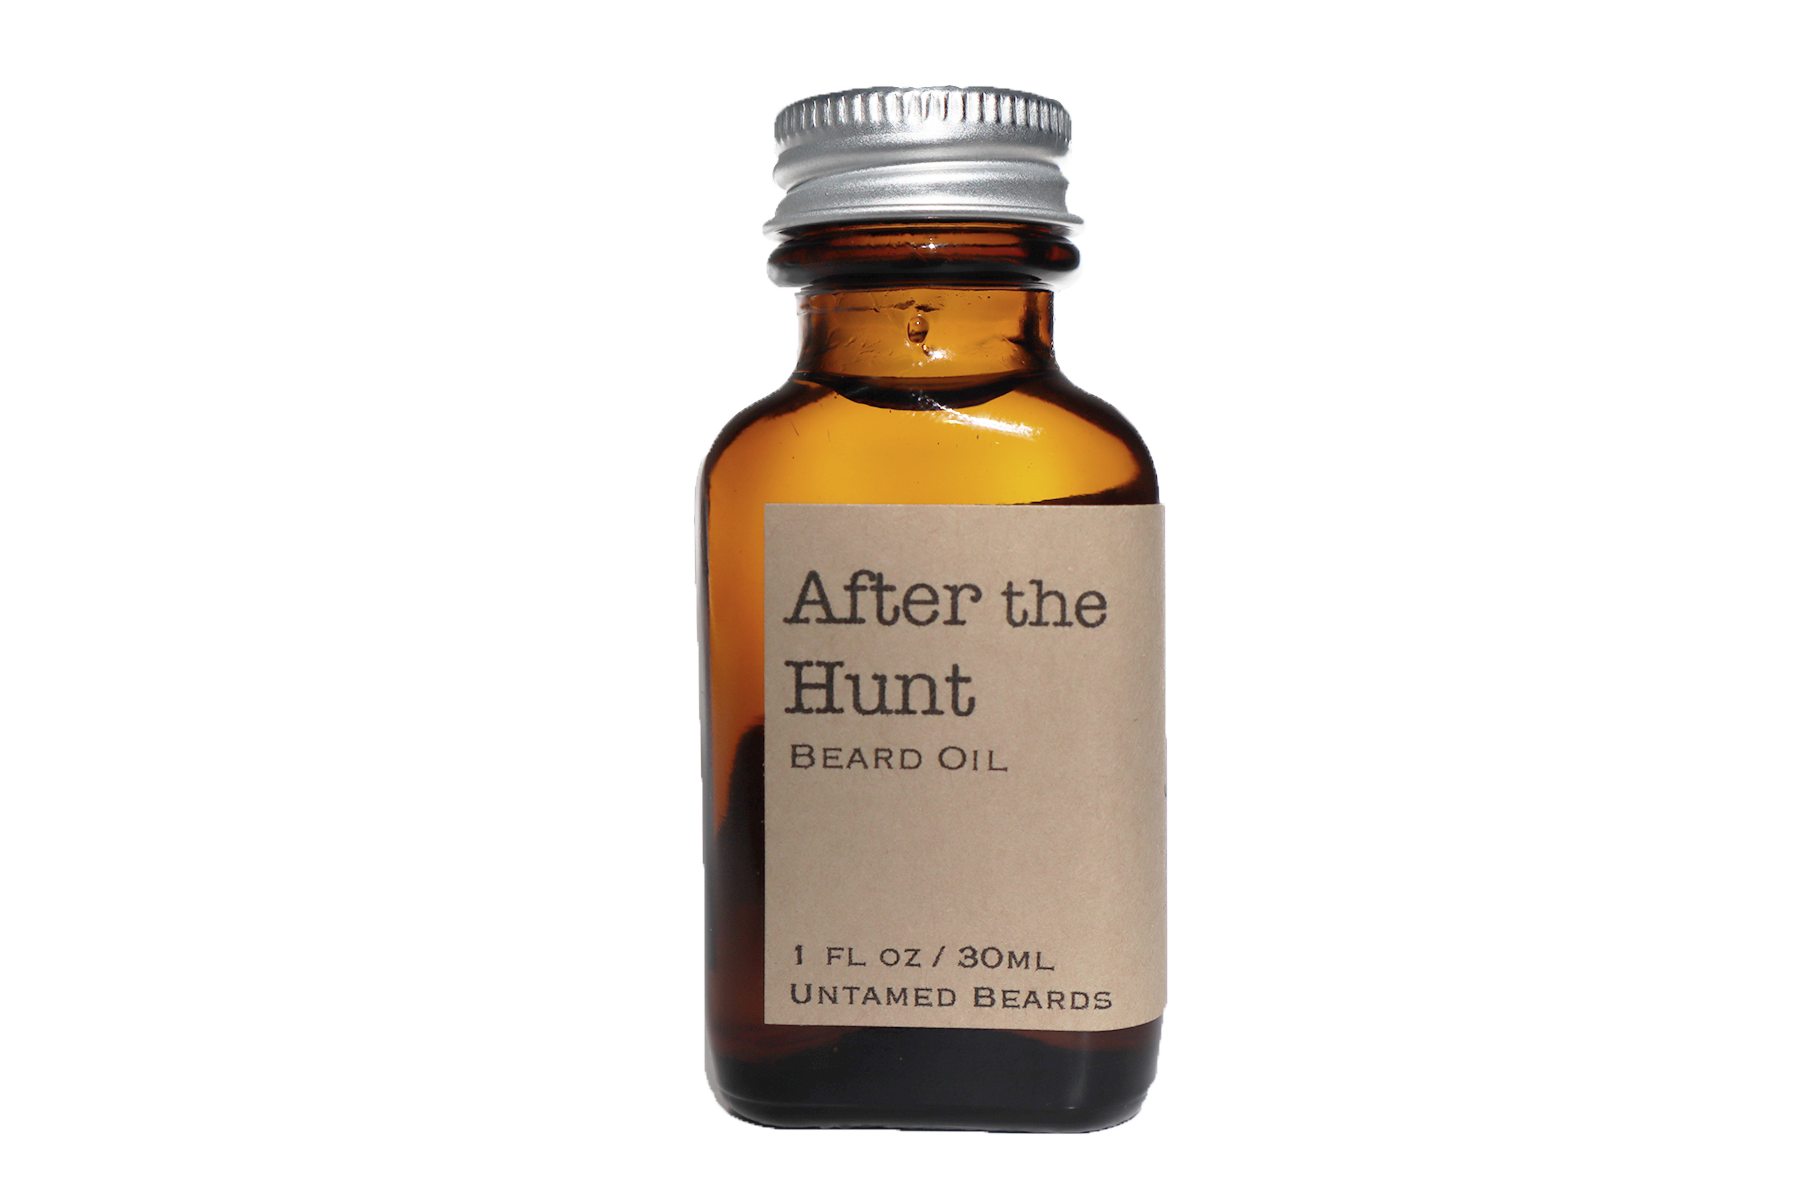 After the Hunt Beard Oil